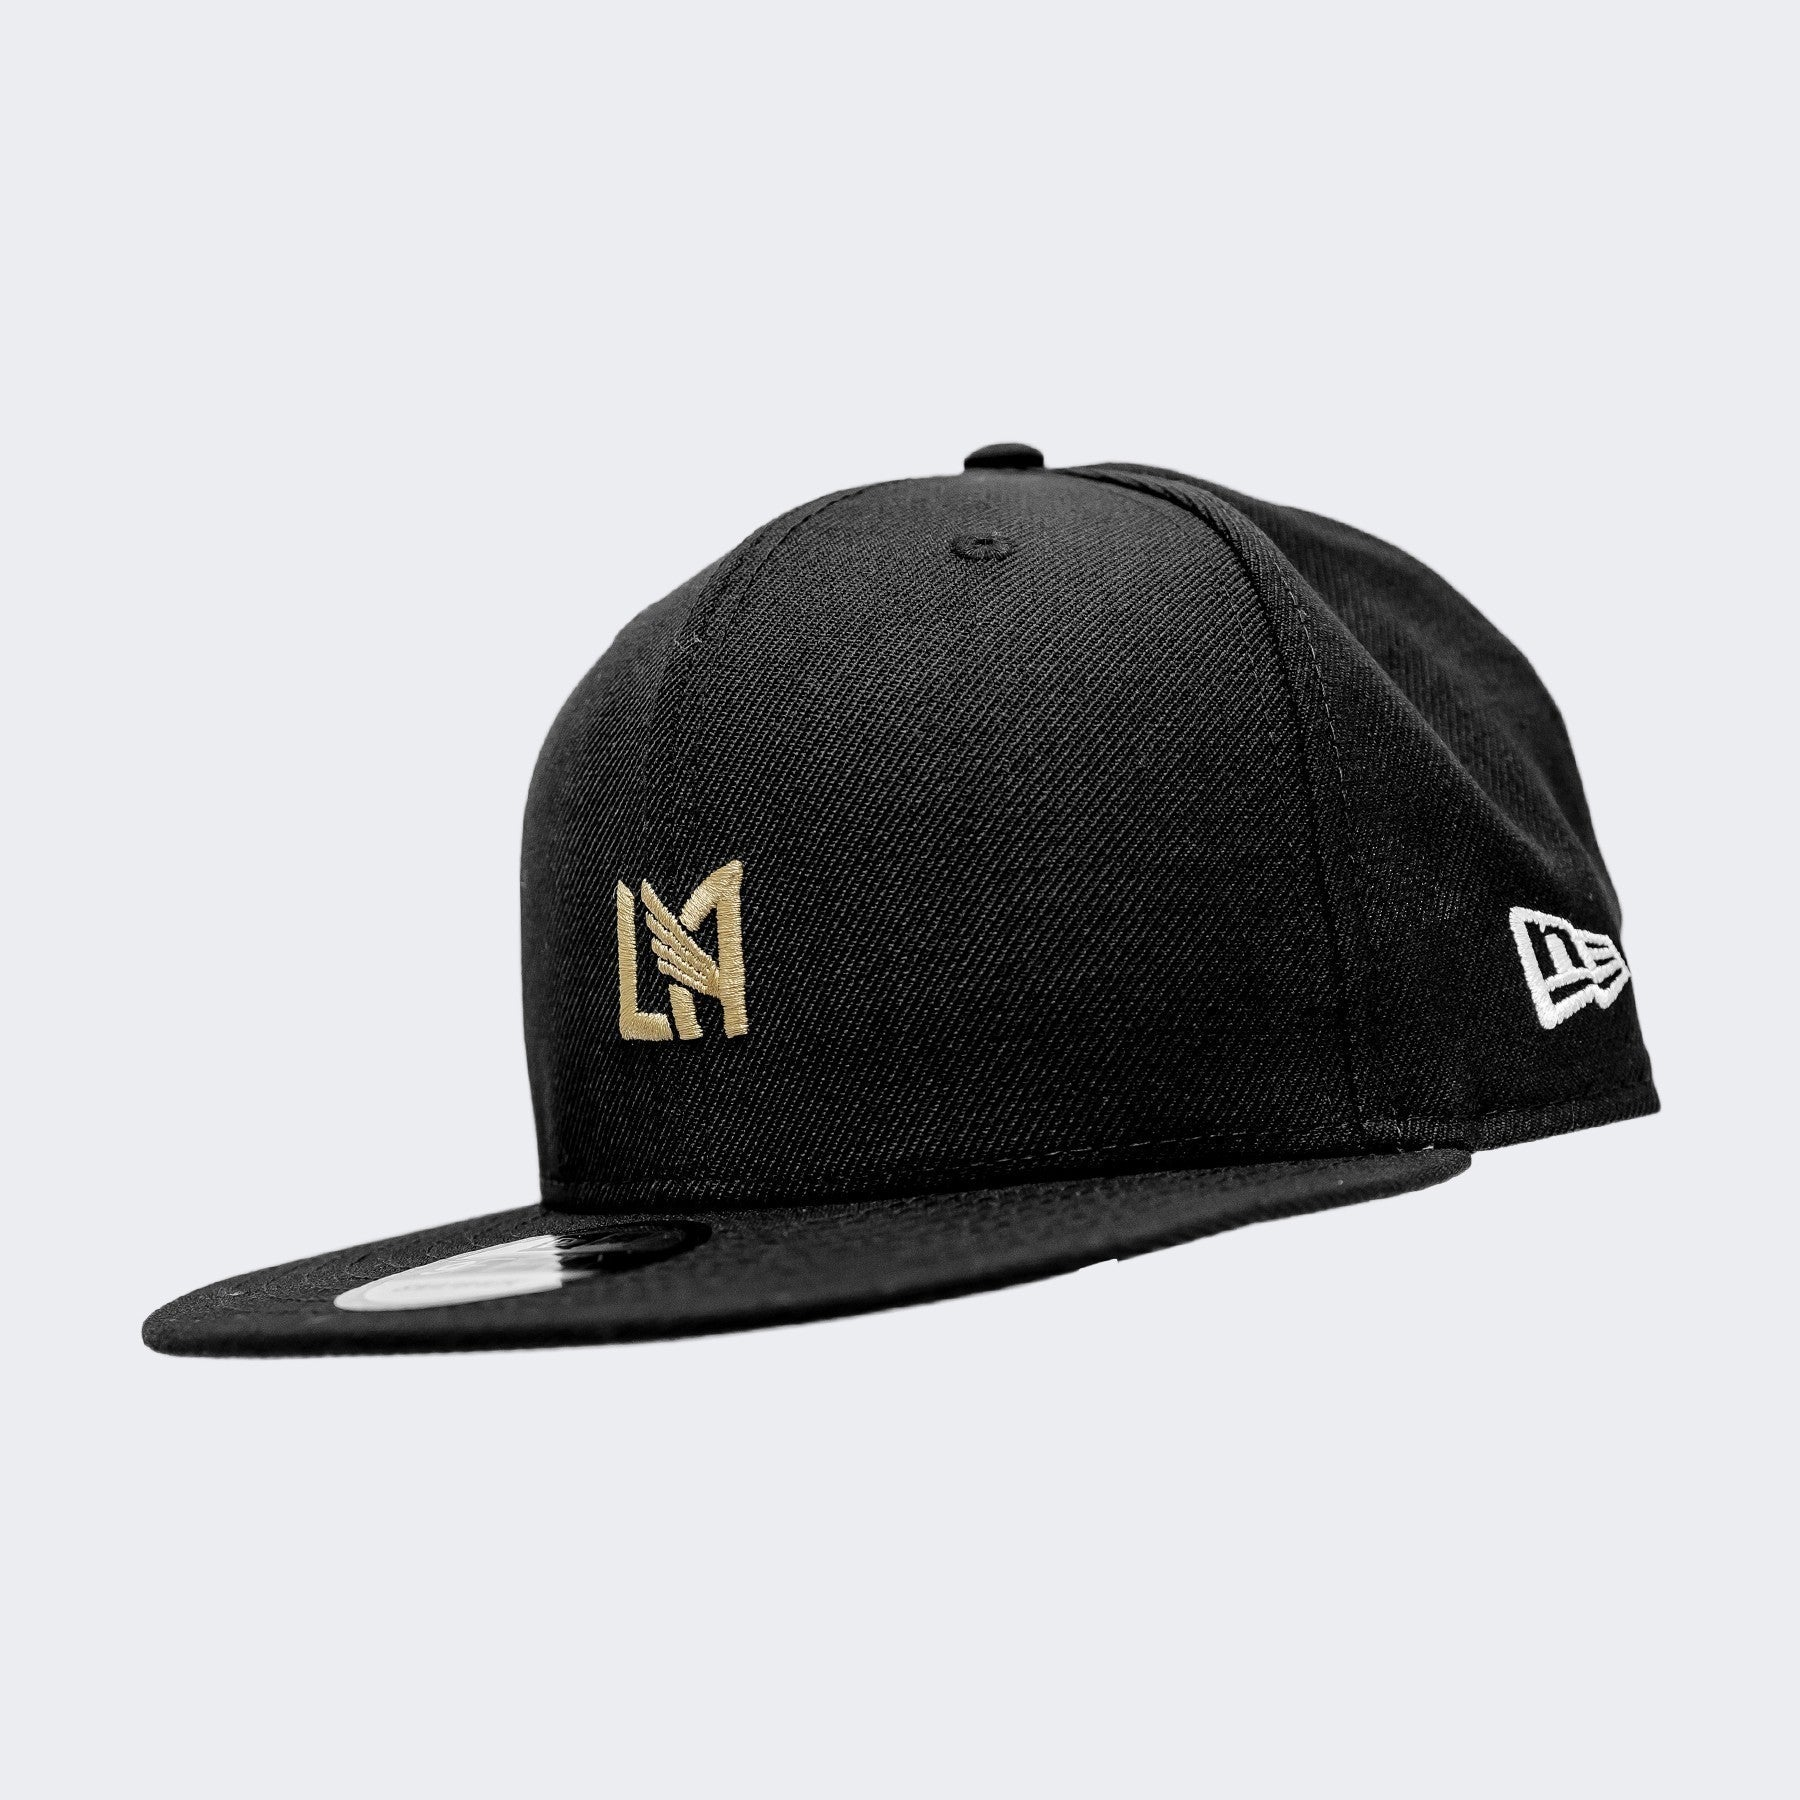 LAFC 5950 Fitted - Black